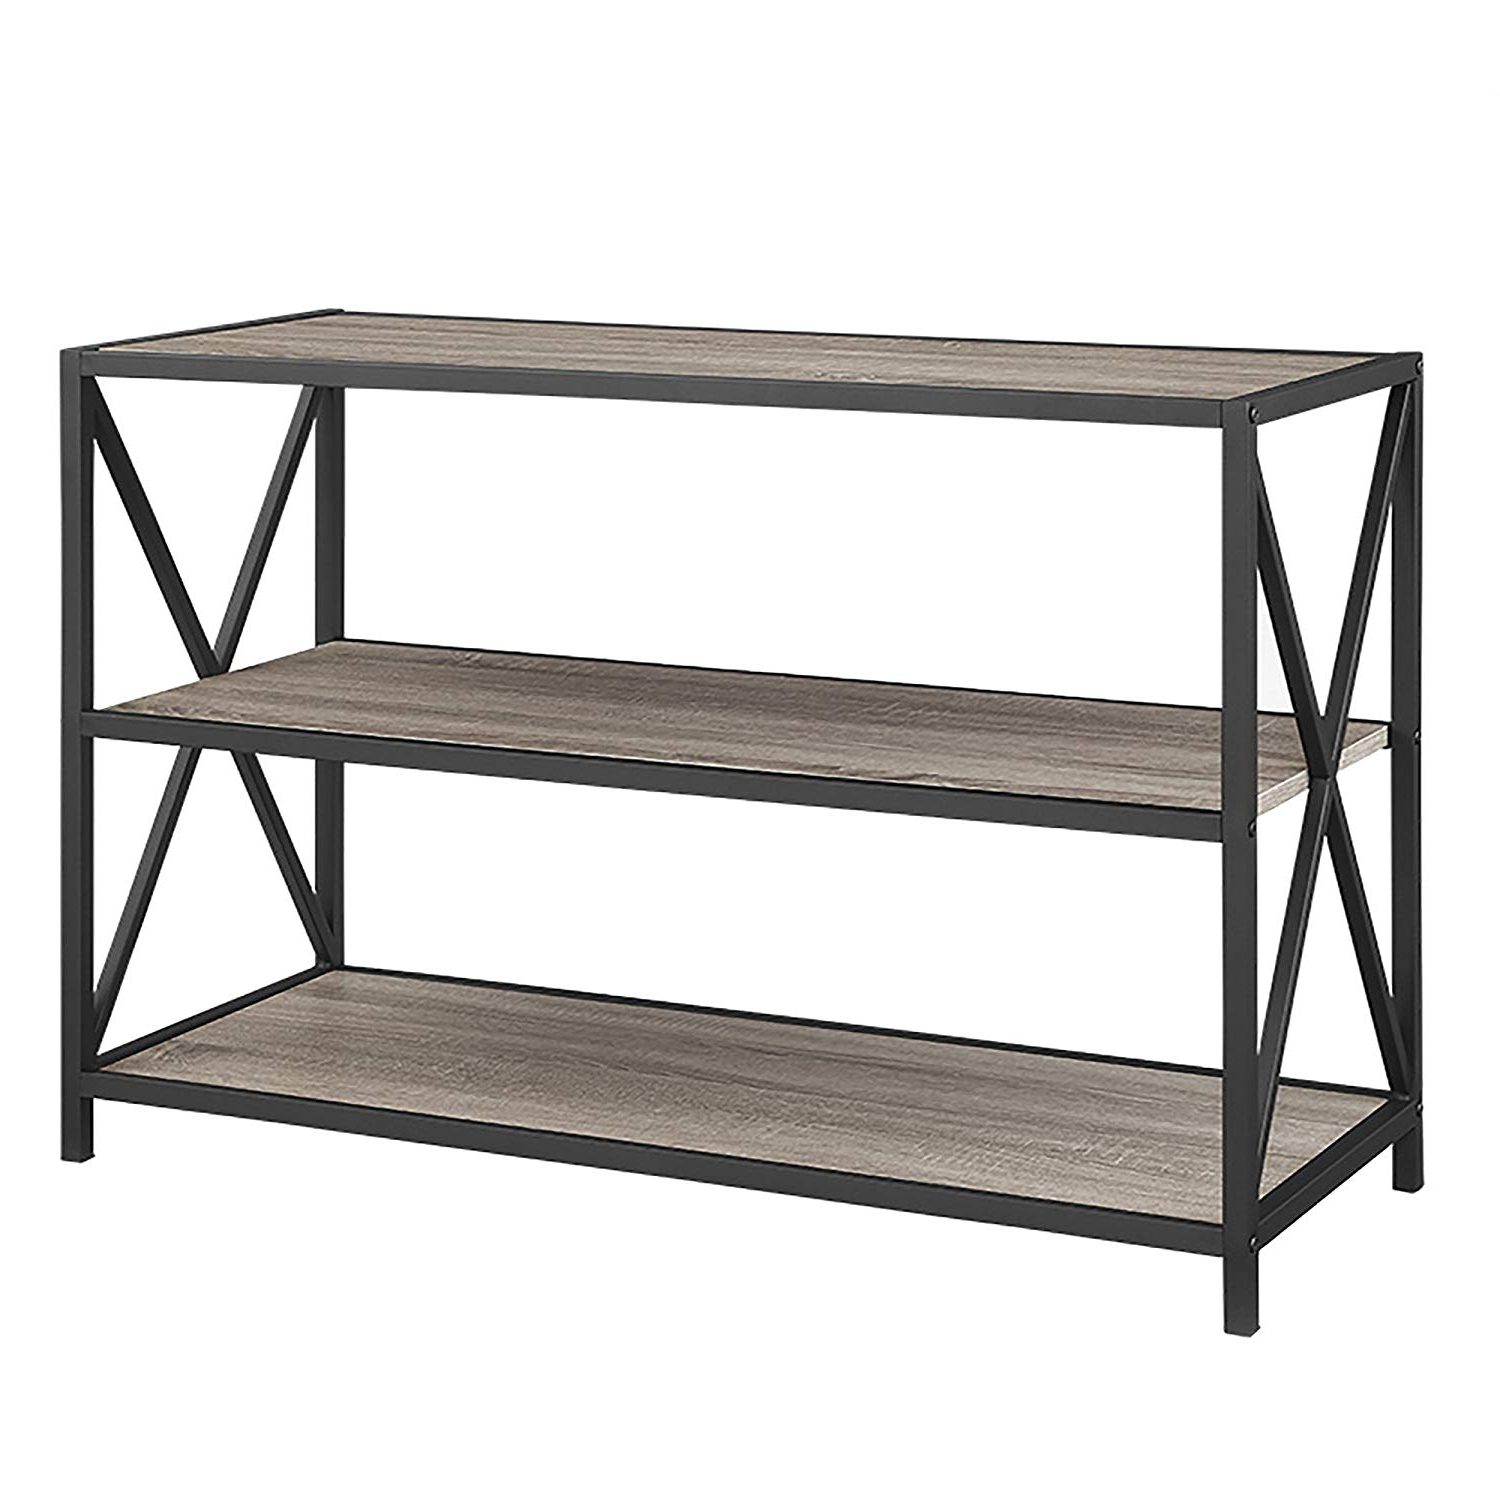 "Popular Hattie Corner Bookcases With Regard To We Furniture 40"" X Frame Metal & Wood Small Media Bookshelf Short, Driftwood, 3 Tier Display Bookcase Organizer 3 Shelf Entryway Table (View 14 of 20)"